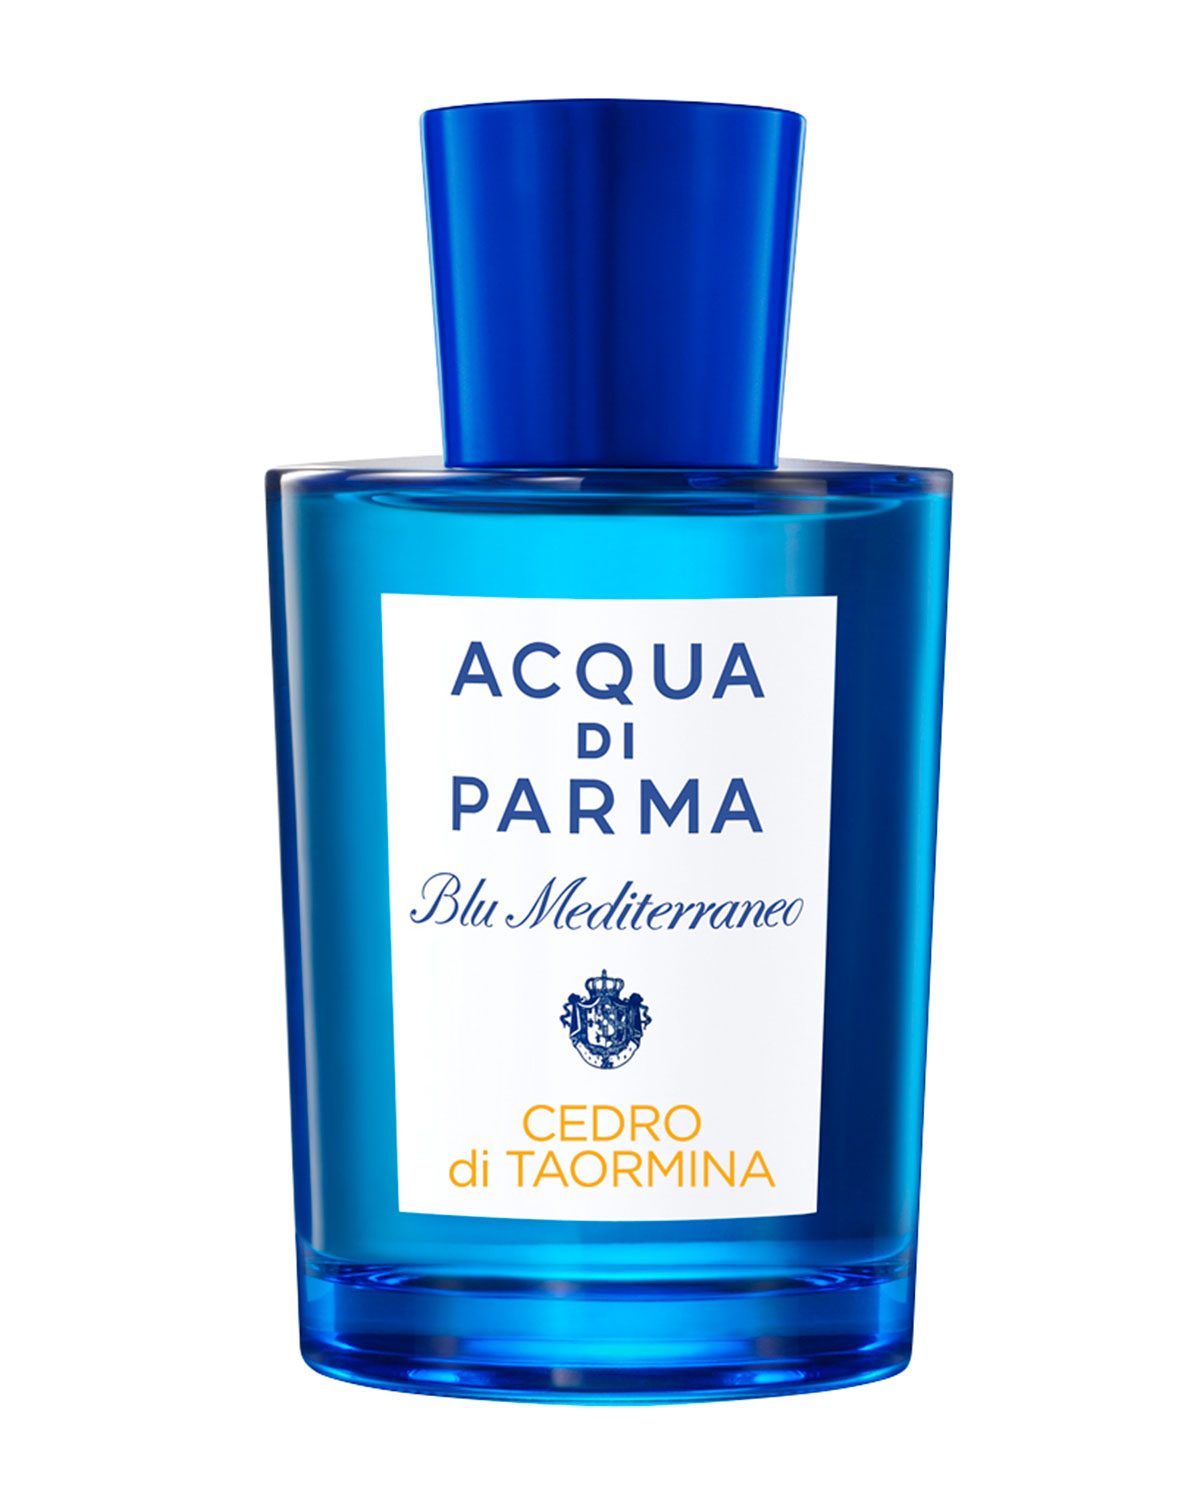 cedro di taormina acqua di parma parfum un nouveau parfum pour homme et femme 2016. Black Bedroom Furniture Sets. Home Design Ideas